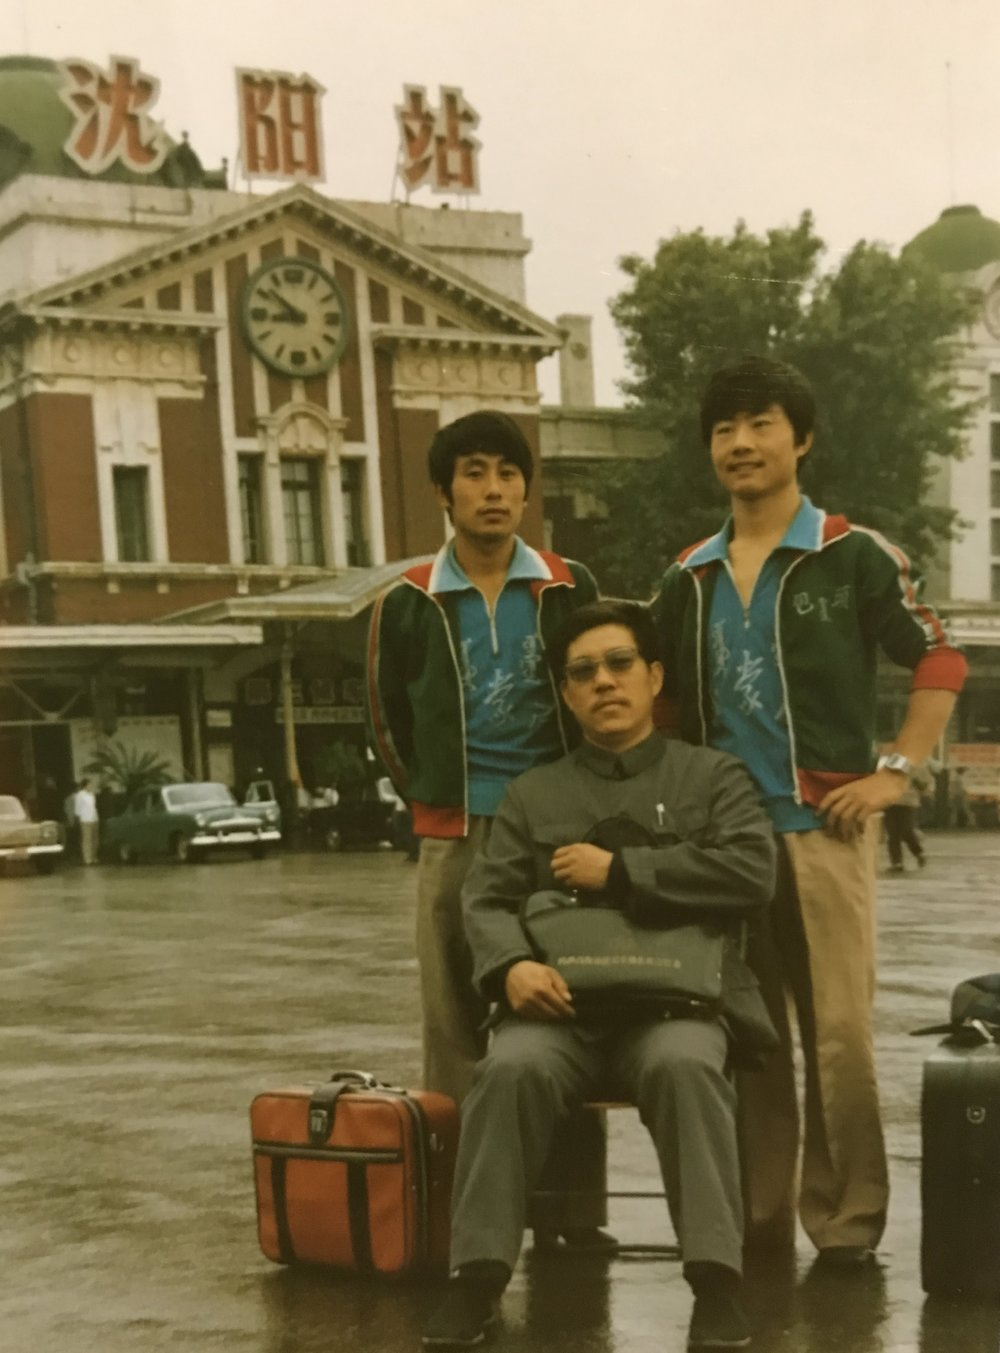 Wayland Li (李文启) standing left with his teammate Zhang Jianguo (张建国) standing right, and Coach Yang (sitting). Location: Luoyang, Henan province, China.